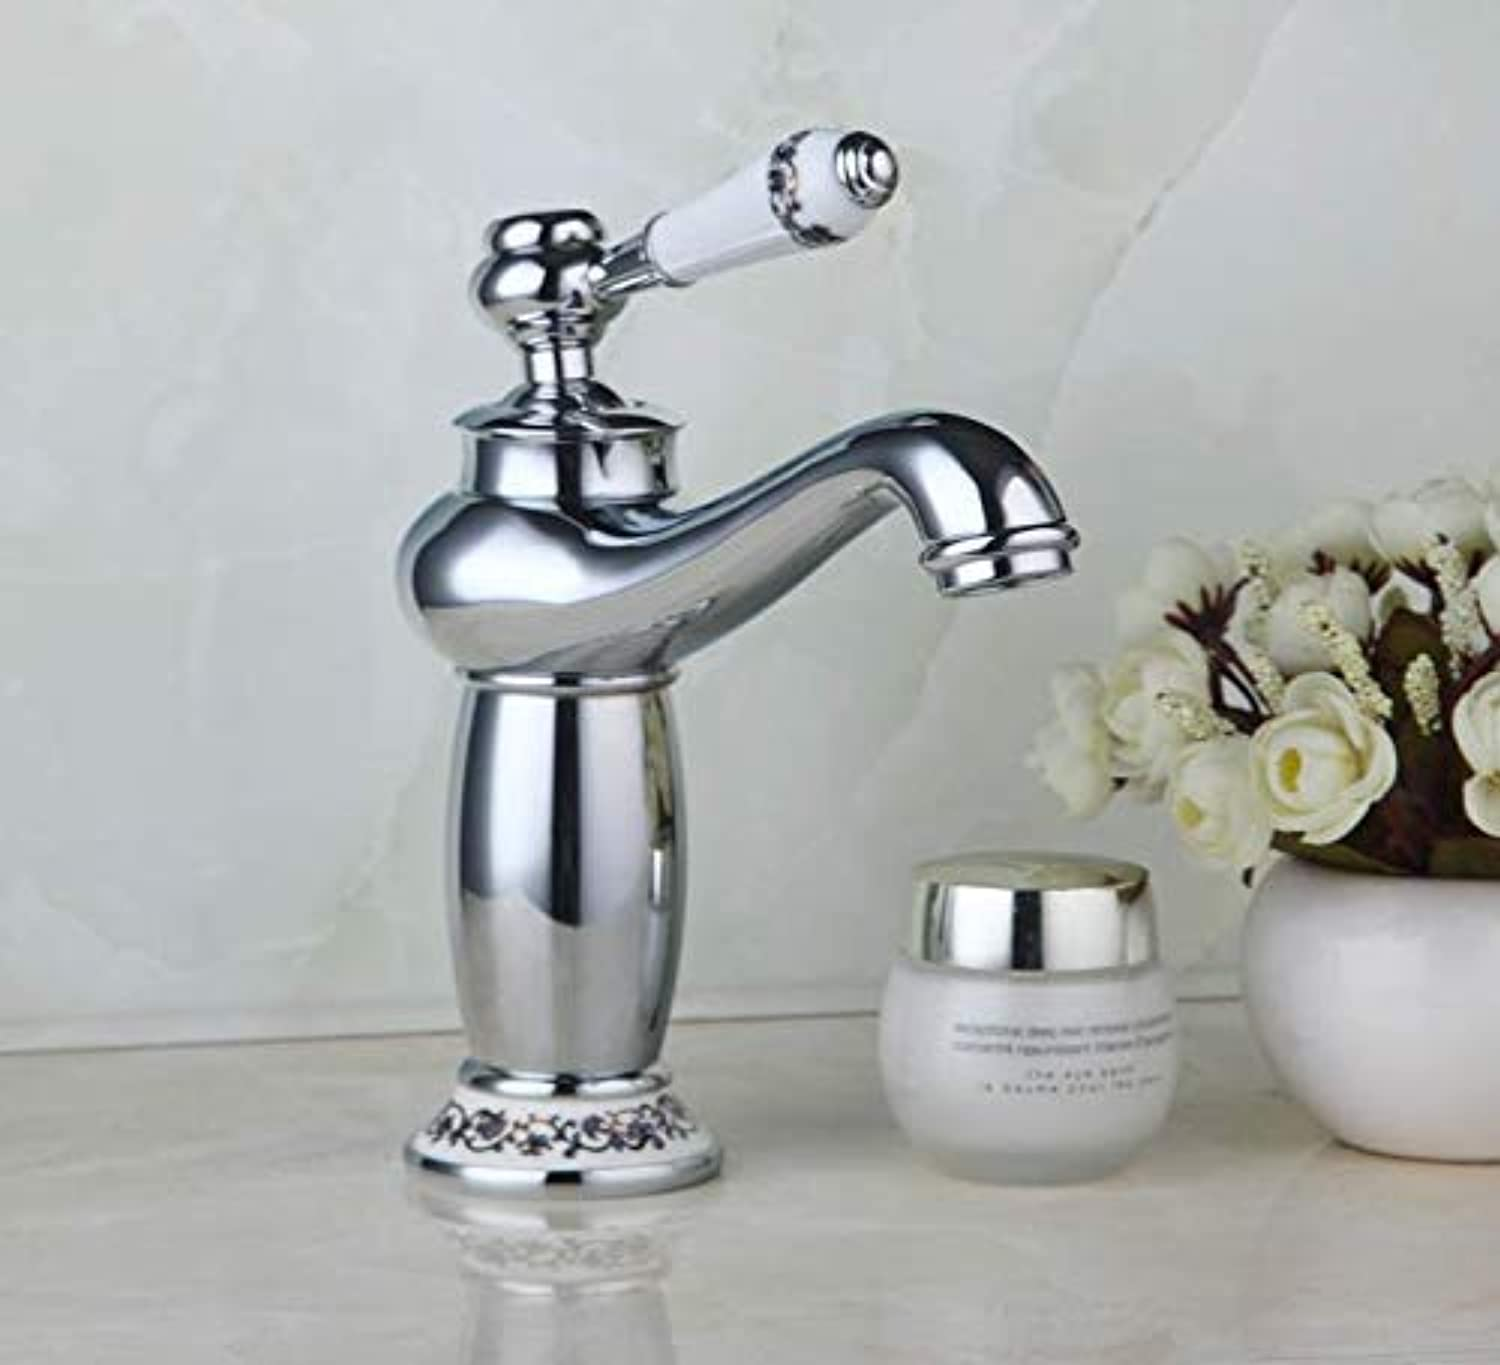 Oudan New Brand Chrome Polished Waterfall Deck Mounted Handed Bathroom Sink Basin Cranes, Mixers & Taps (color   -, Size   -)